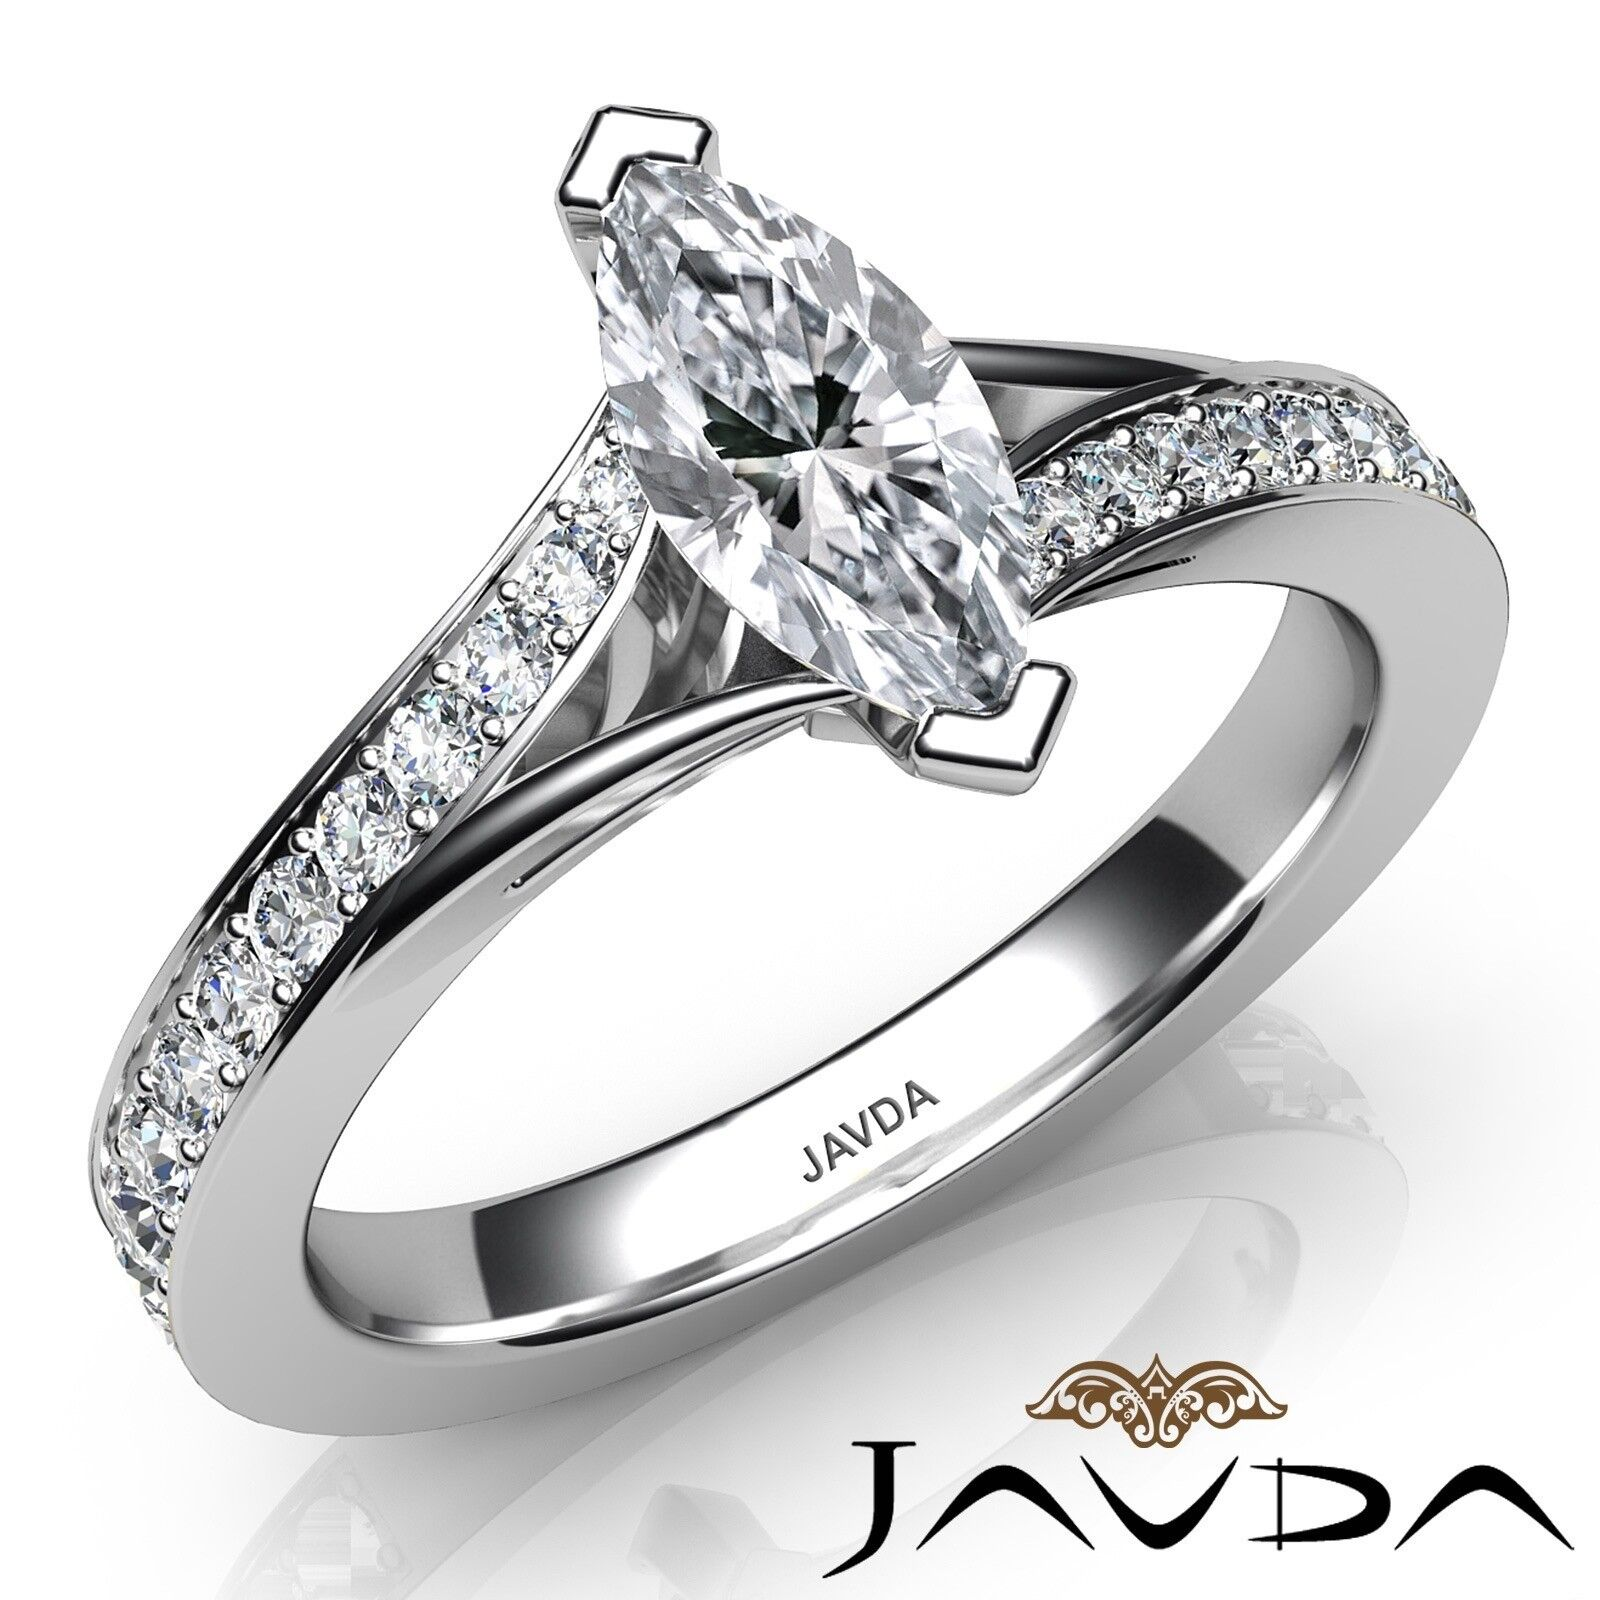 1.26ctw Classic Sidestone Marquise Diamond Engagement Ring GIA H-SI2 White Gold